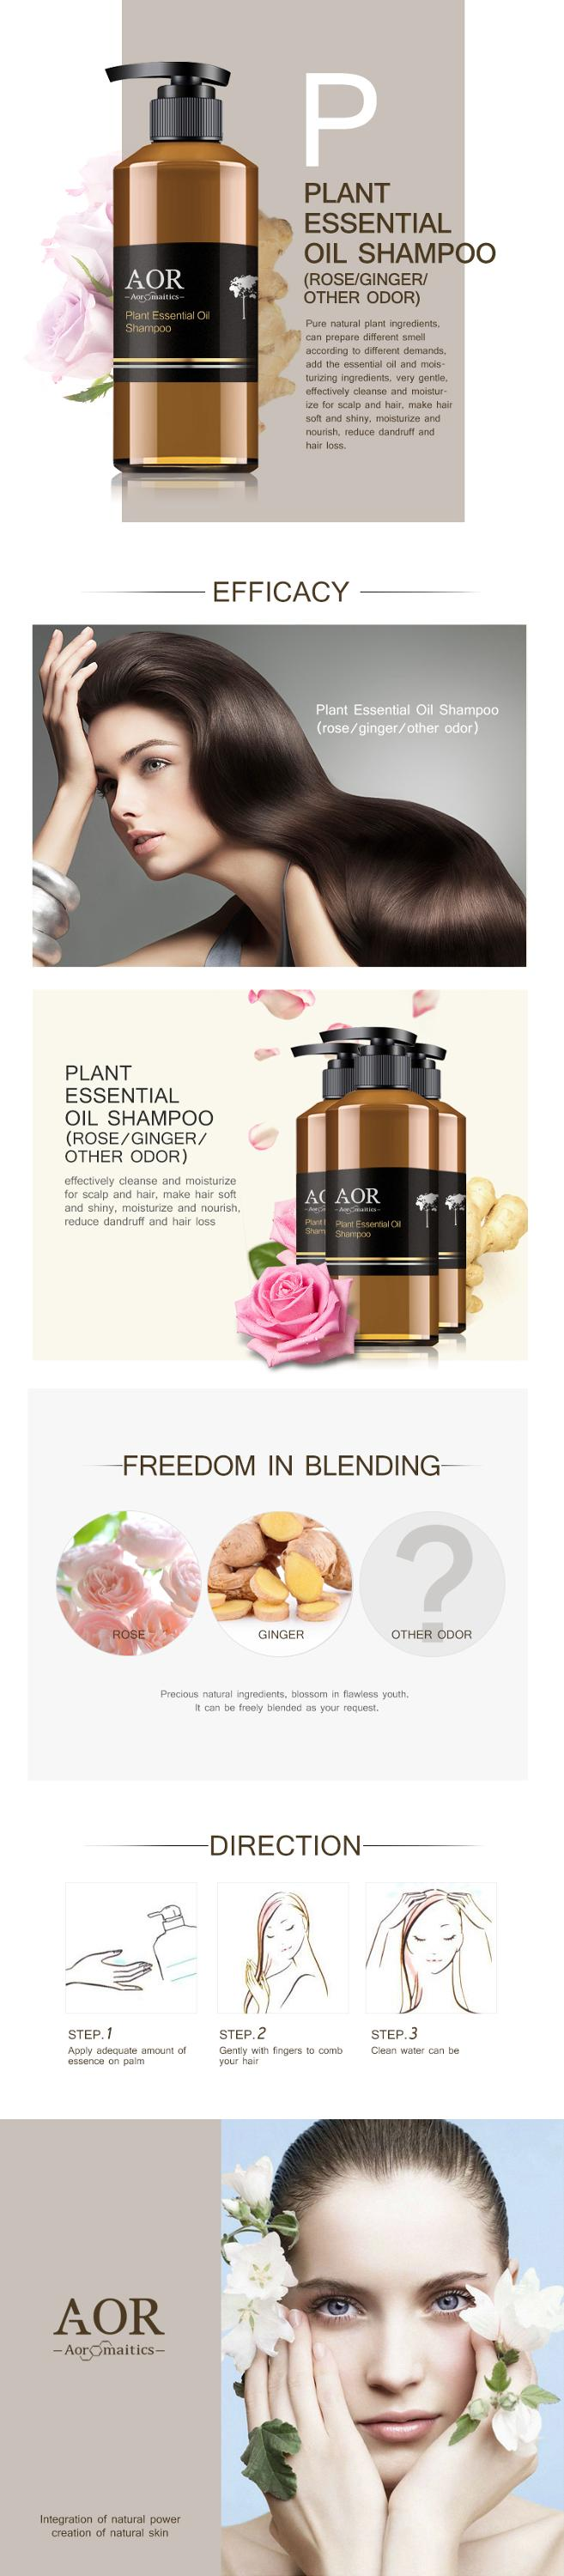 Manufacturers supply Plant Essential oil Anti-Dandruff Shampoo Oem/Odm treatment of hair loss and bifurcation